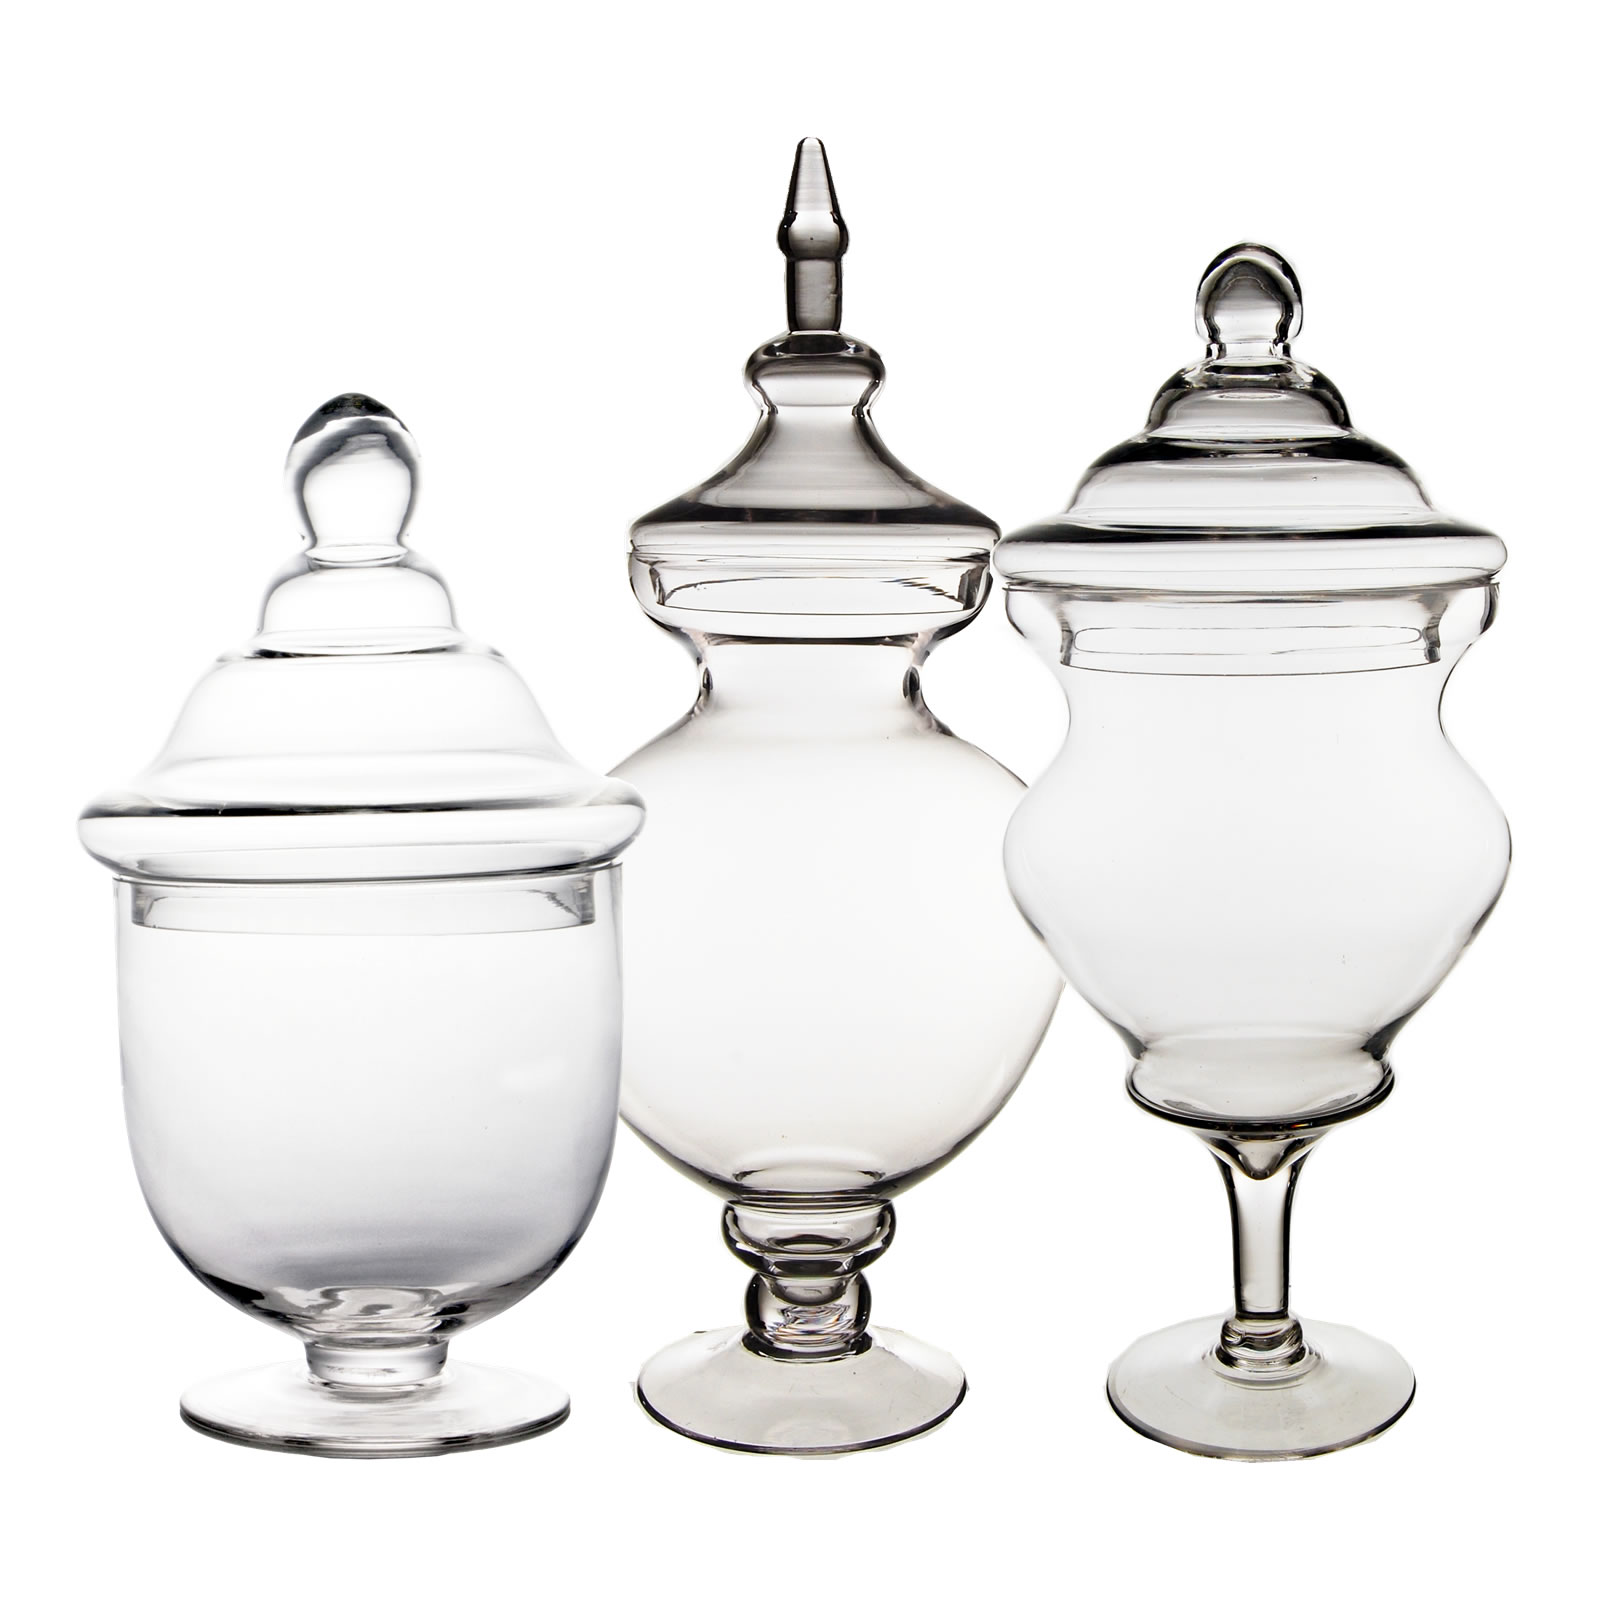 "Glass Apothecary Jars Set of 3, H-21.5, 14.25"", 16.25"""